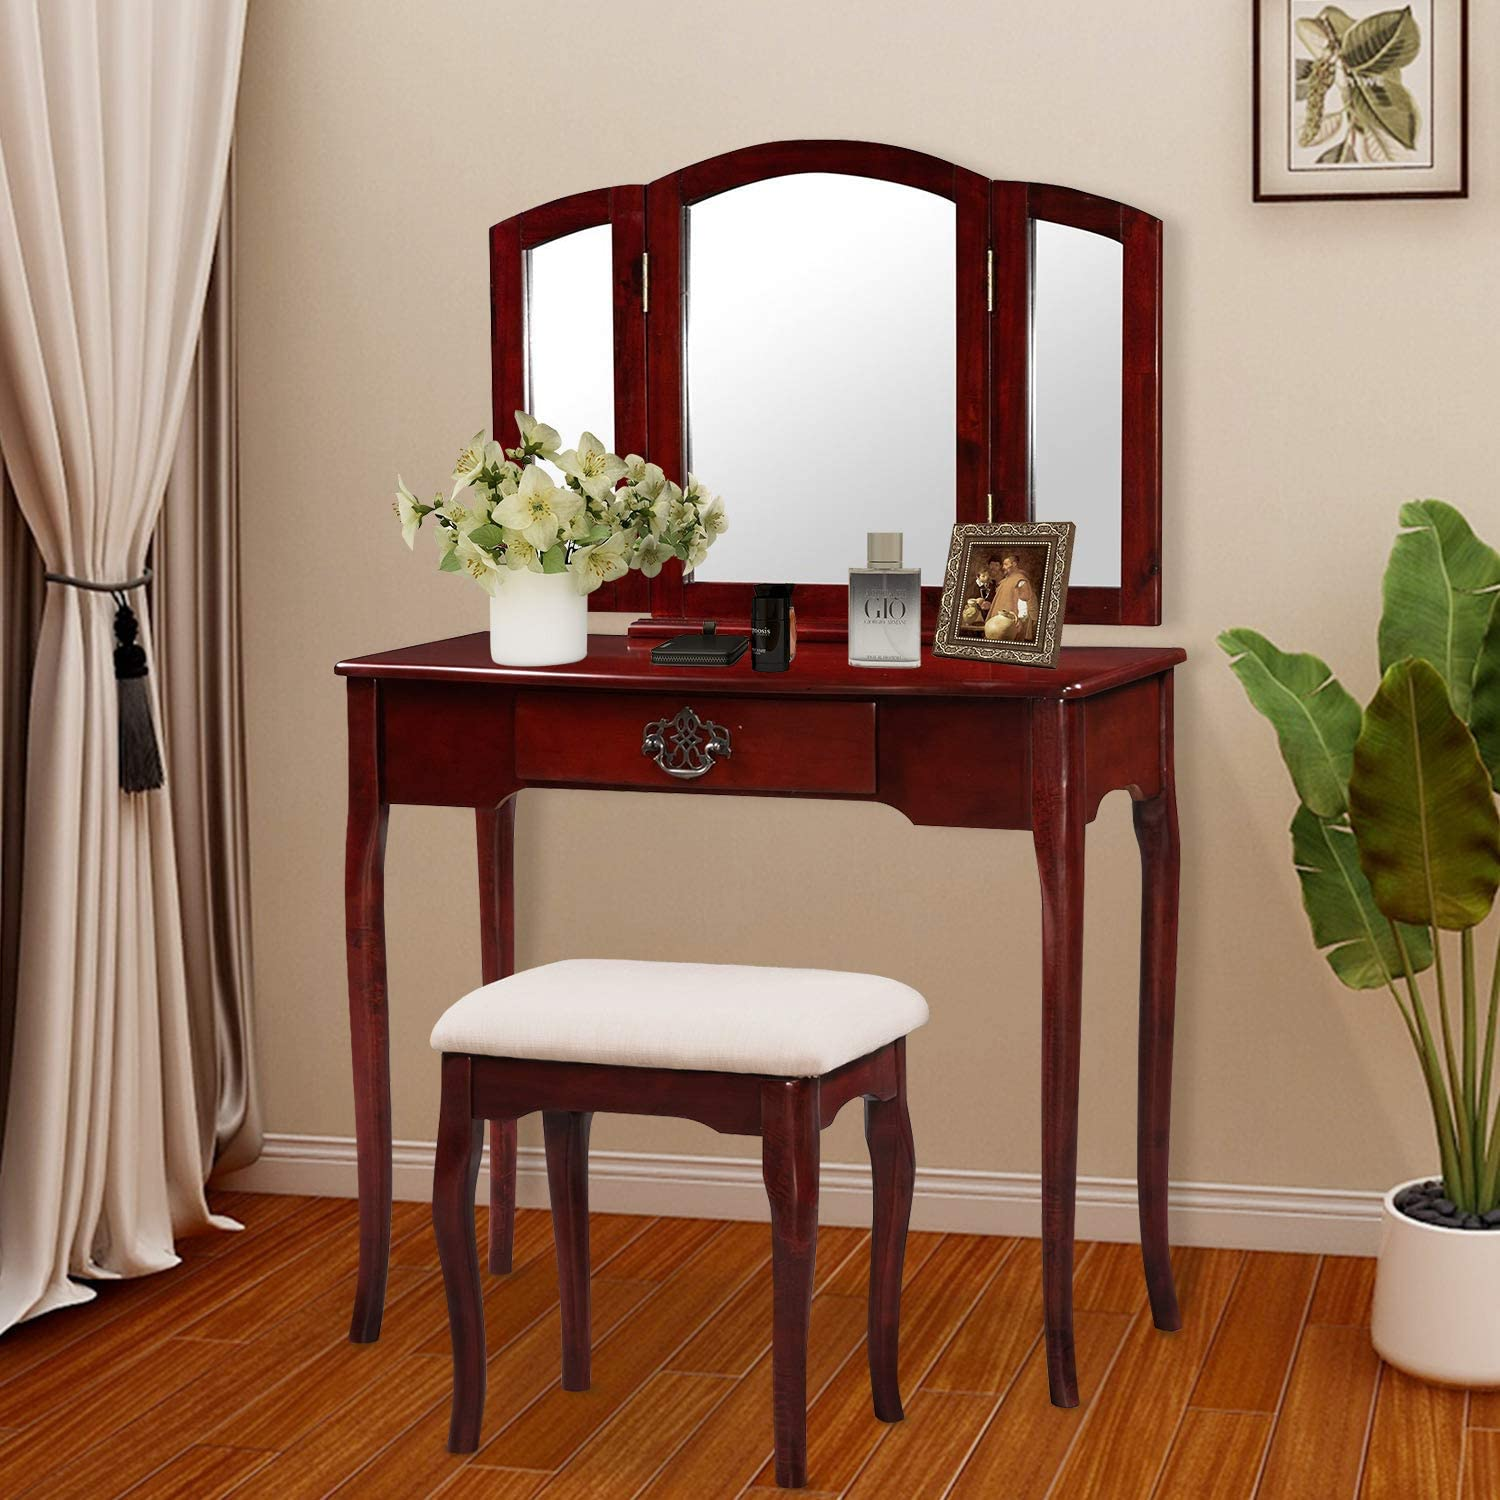 Harper Bright Designs Vanity Set Make-up Dressing Table with Mirror and Cushioned Stool Brown